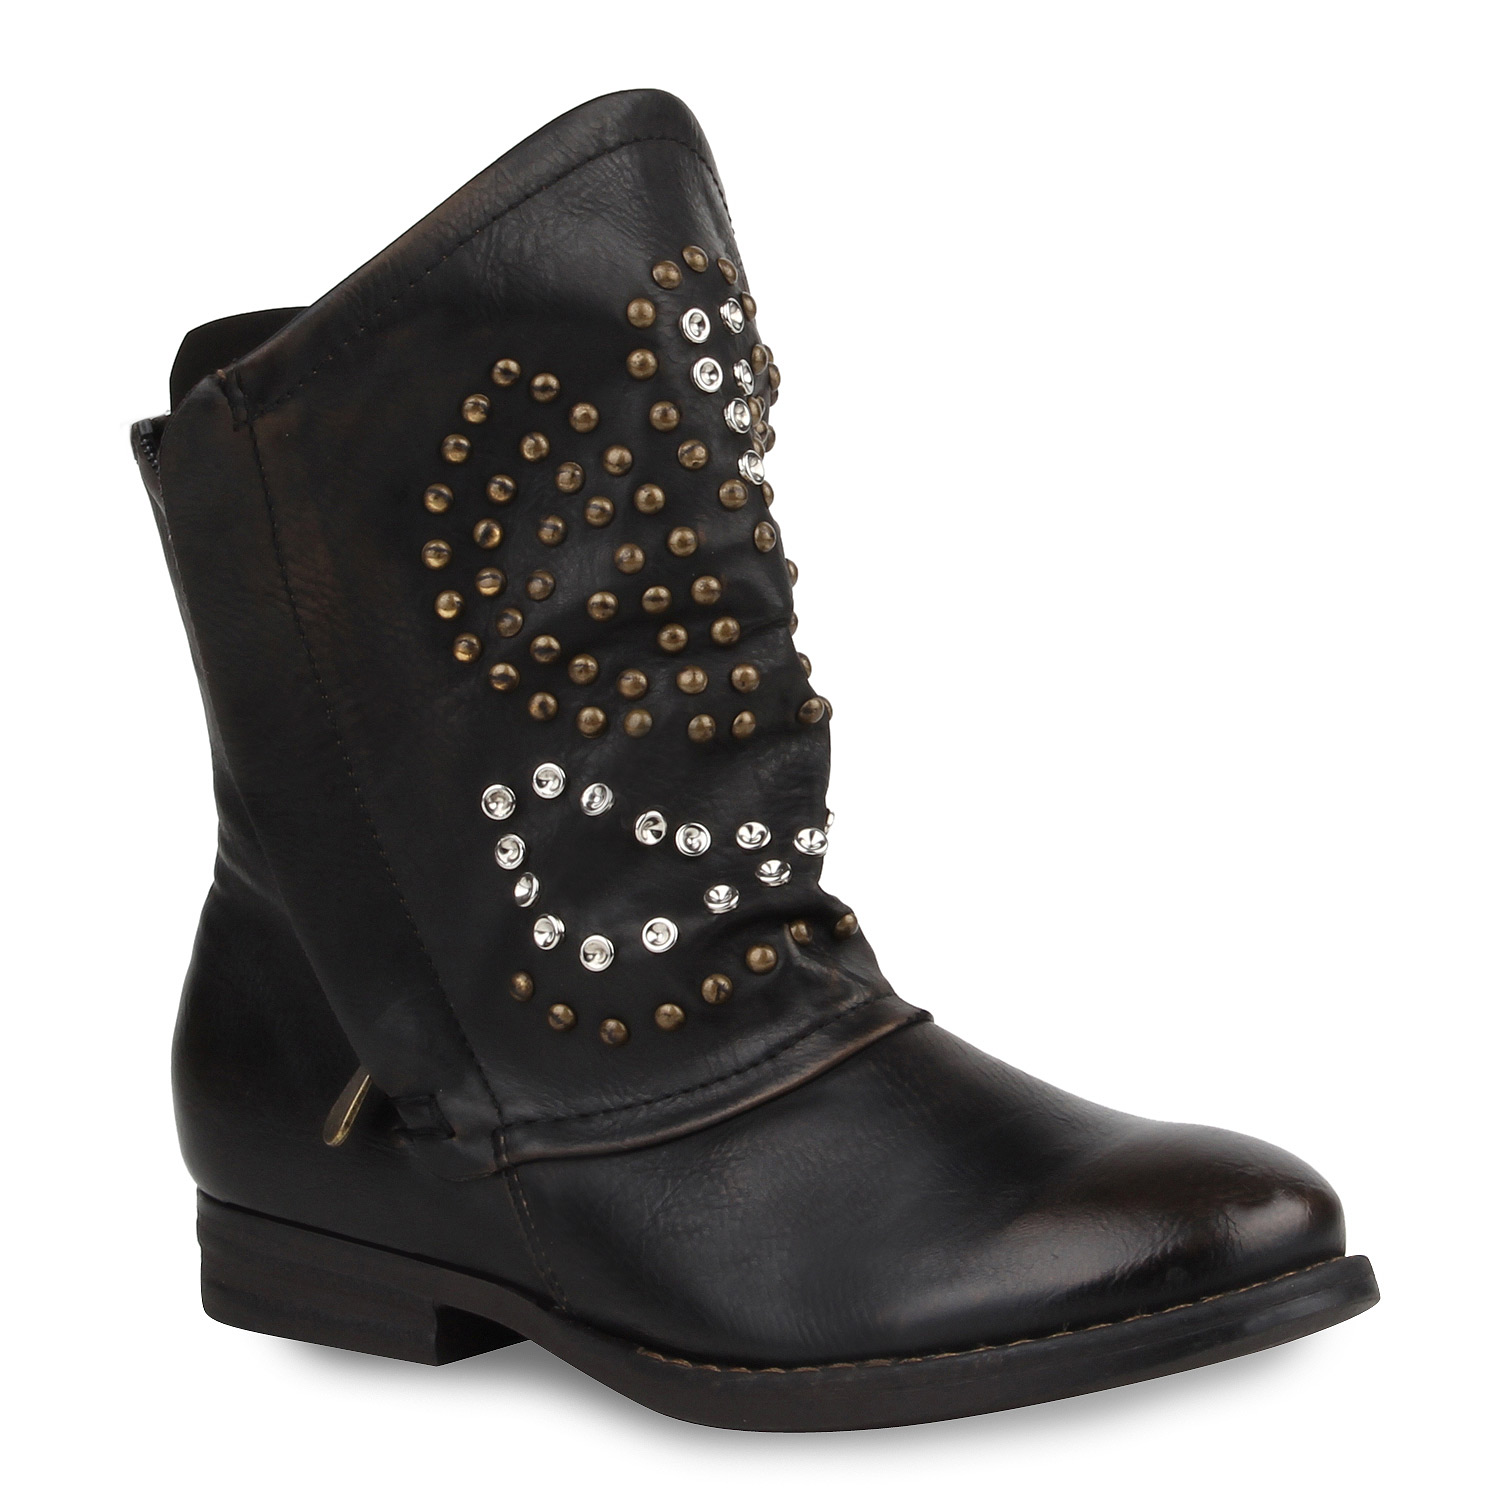 damen stiefeletten stiefel biker boots nieten blockabsatz 77853 ebay. Black Bedroom Furniture Sets. Home Design Ideas